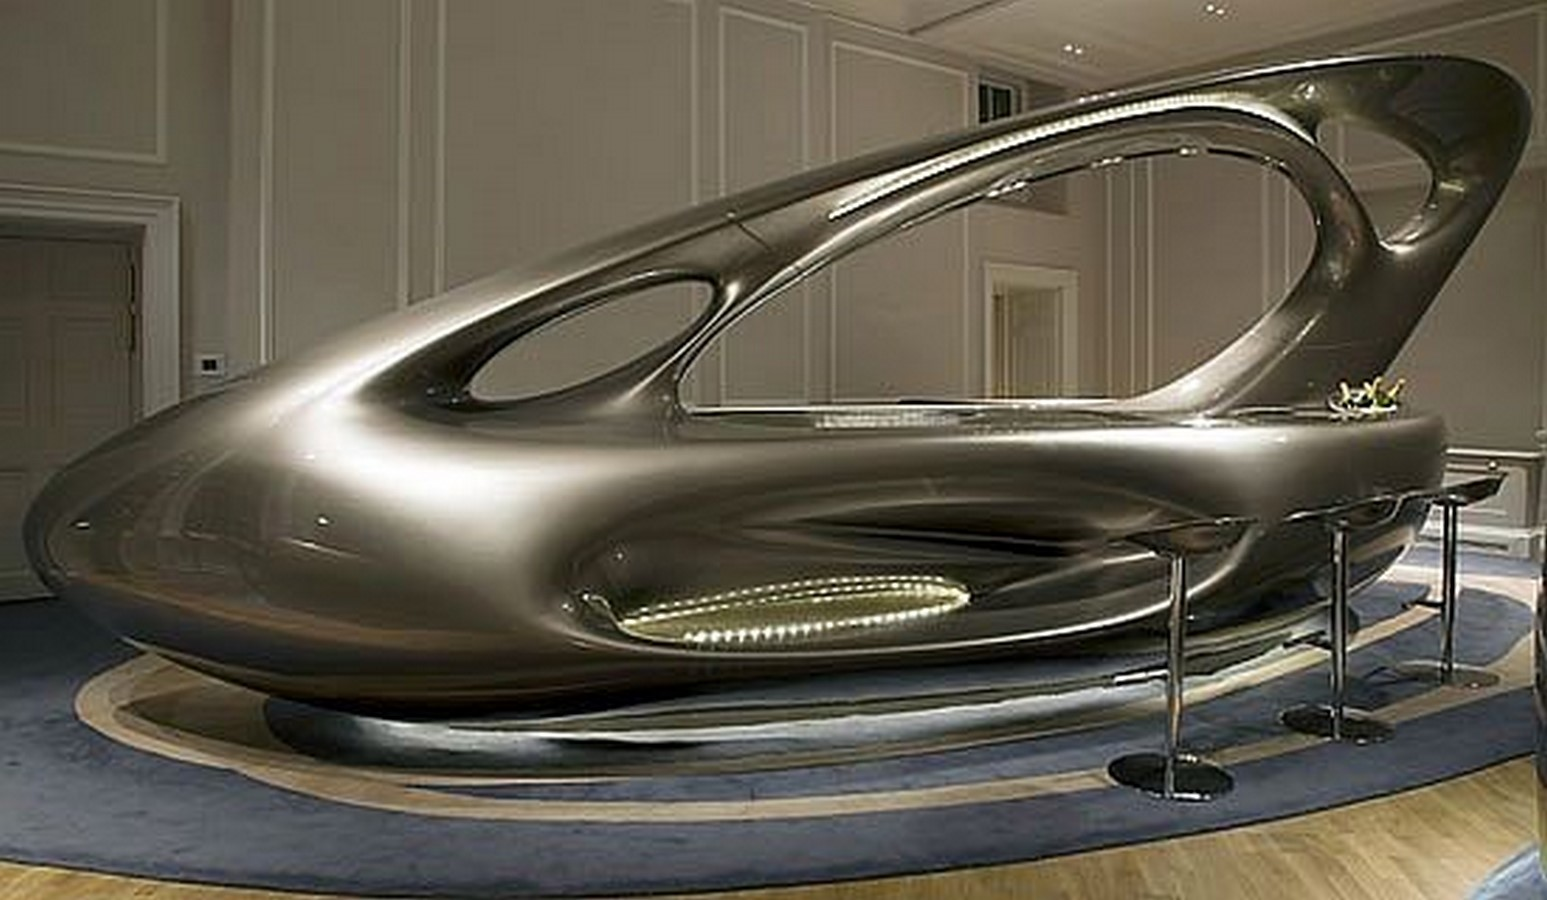 20 Futuristic homes ideas to invest in - Sheet8